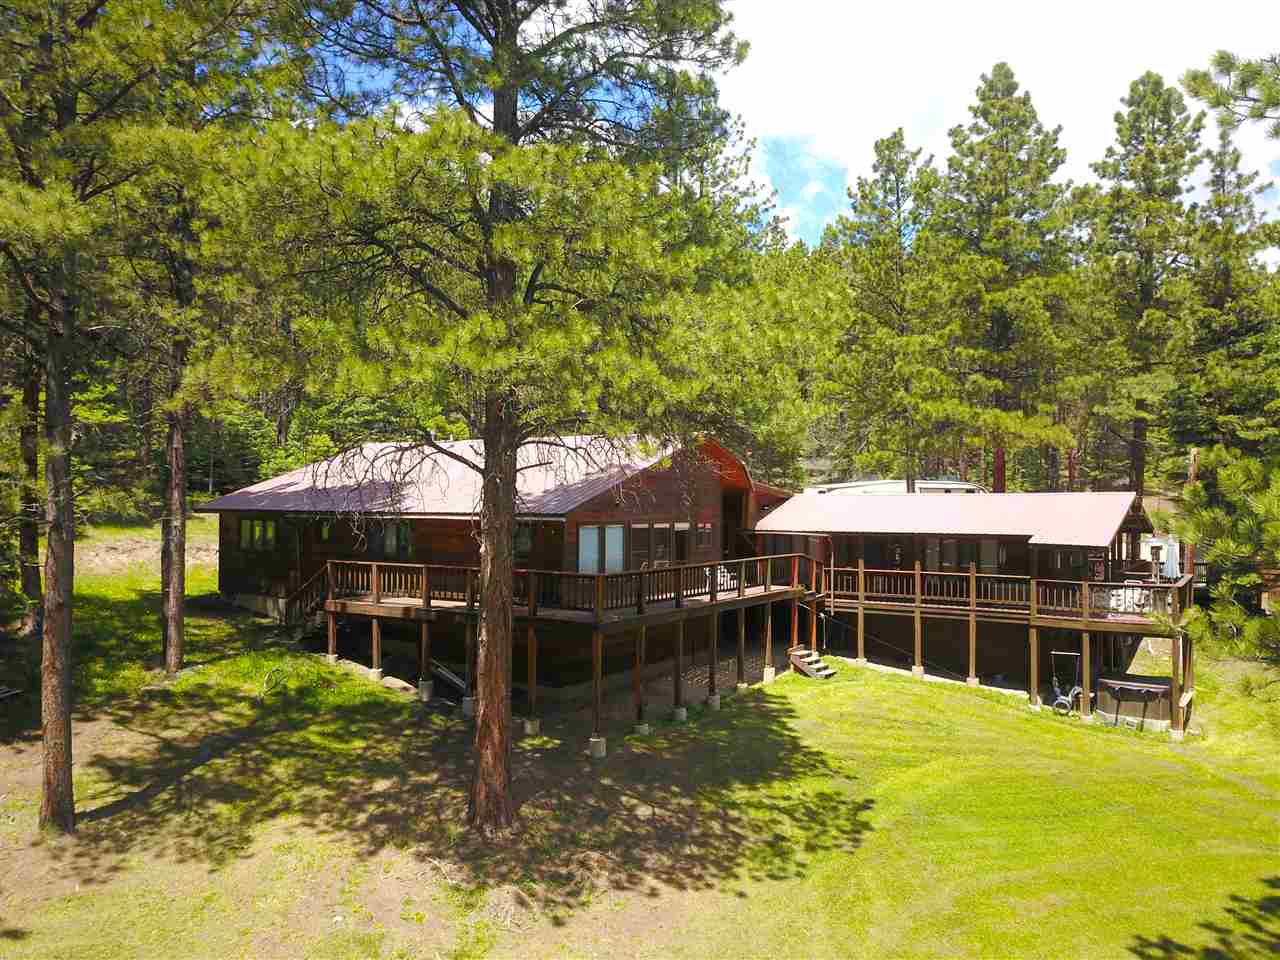 31 David Robins Lane, Eagle Nest, NM 87718